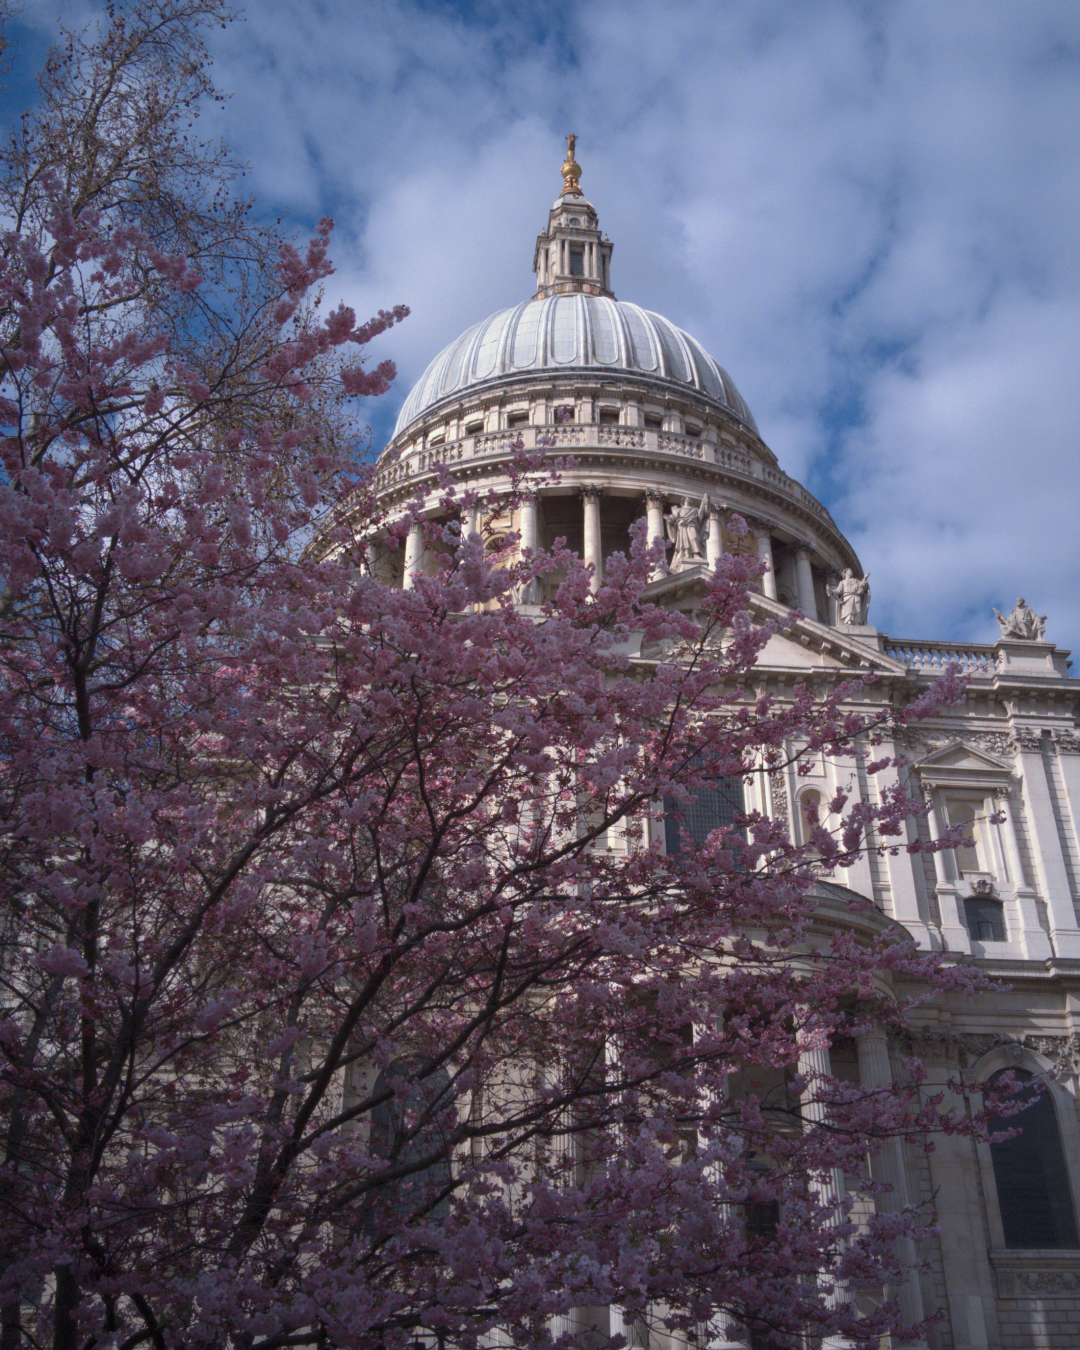 St Paul's Cathedral, London, photographed on 8 April 2016